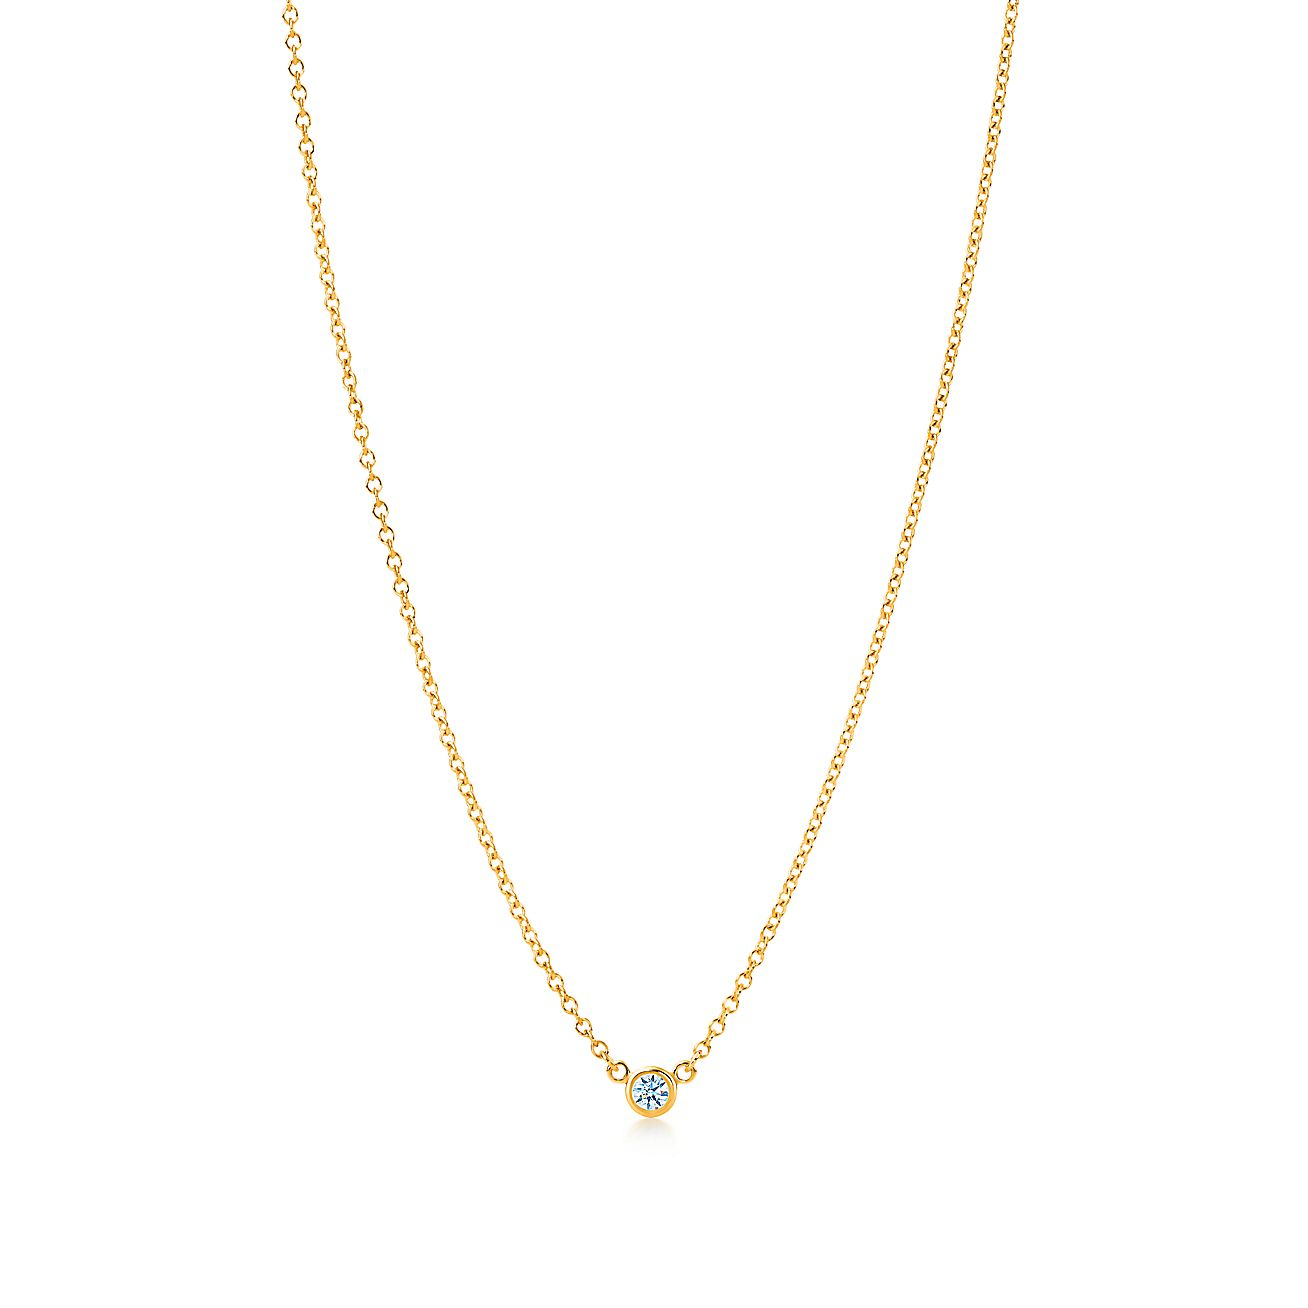 Elsa peretti diamonds by the yard pendant in 18k gold with carat elsa peretti diamonds by the yard pendant in 18k gold with carat weight 05 tiffany co aloadofball Gallery